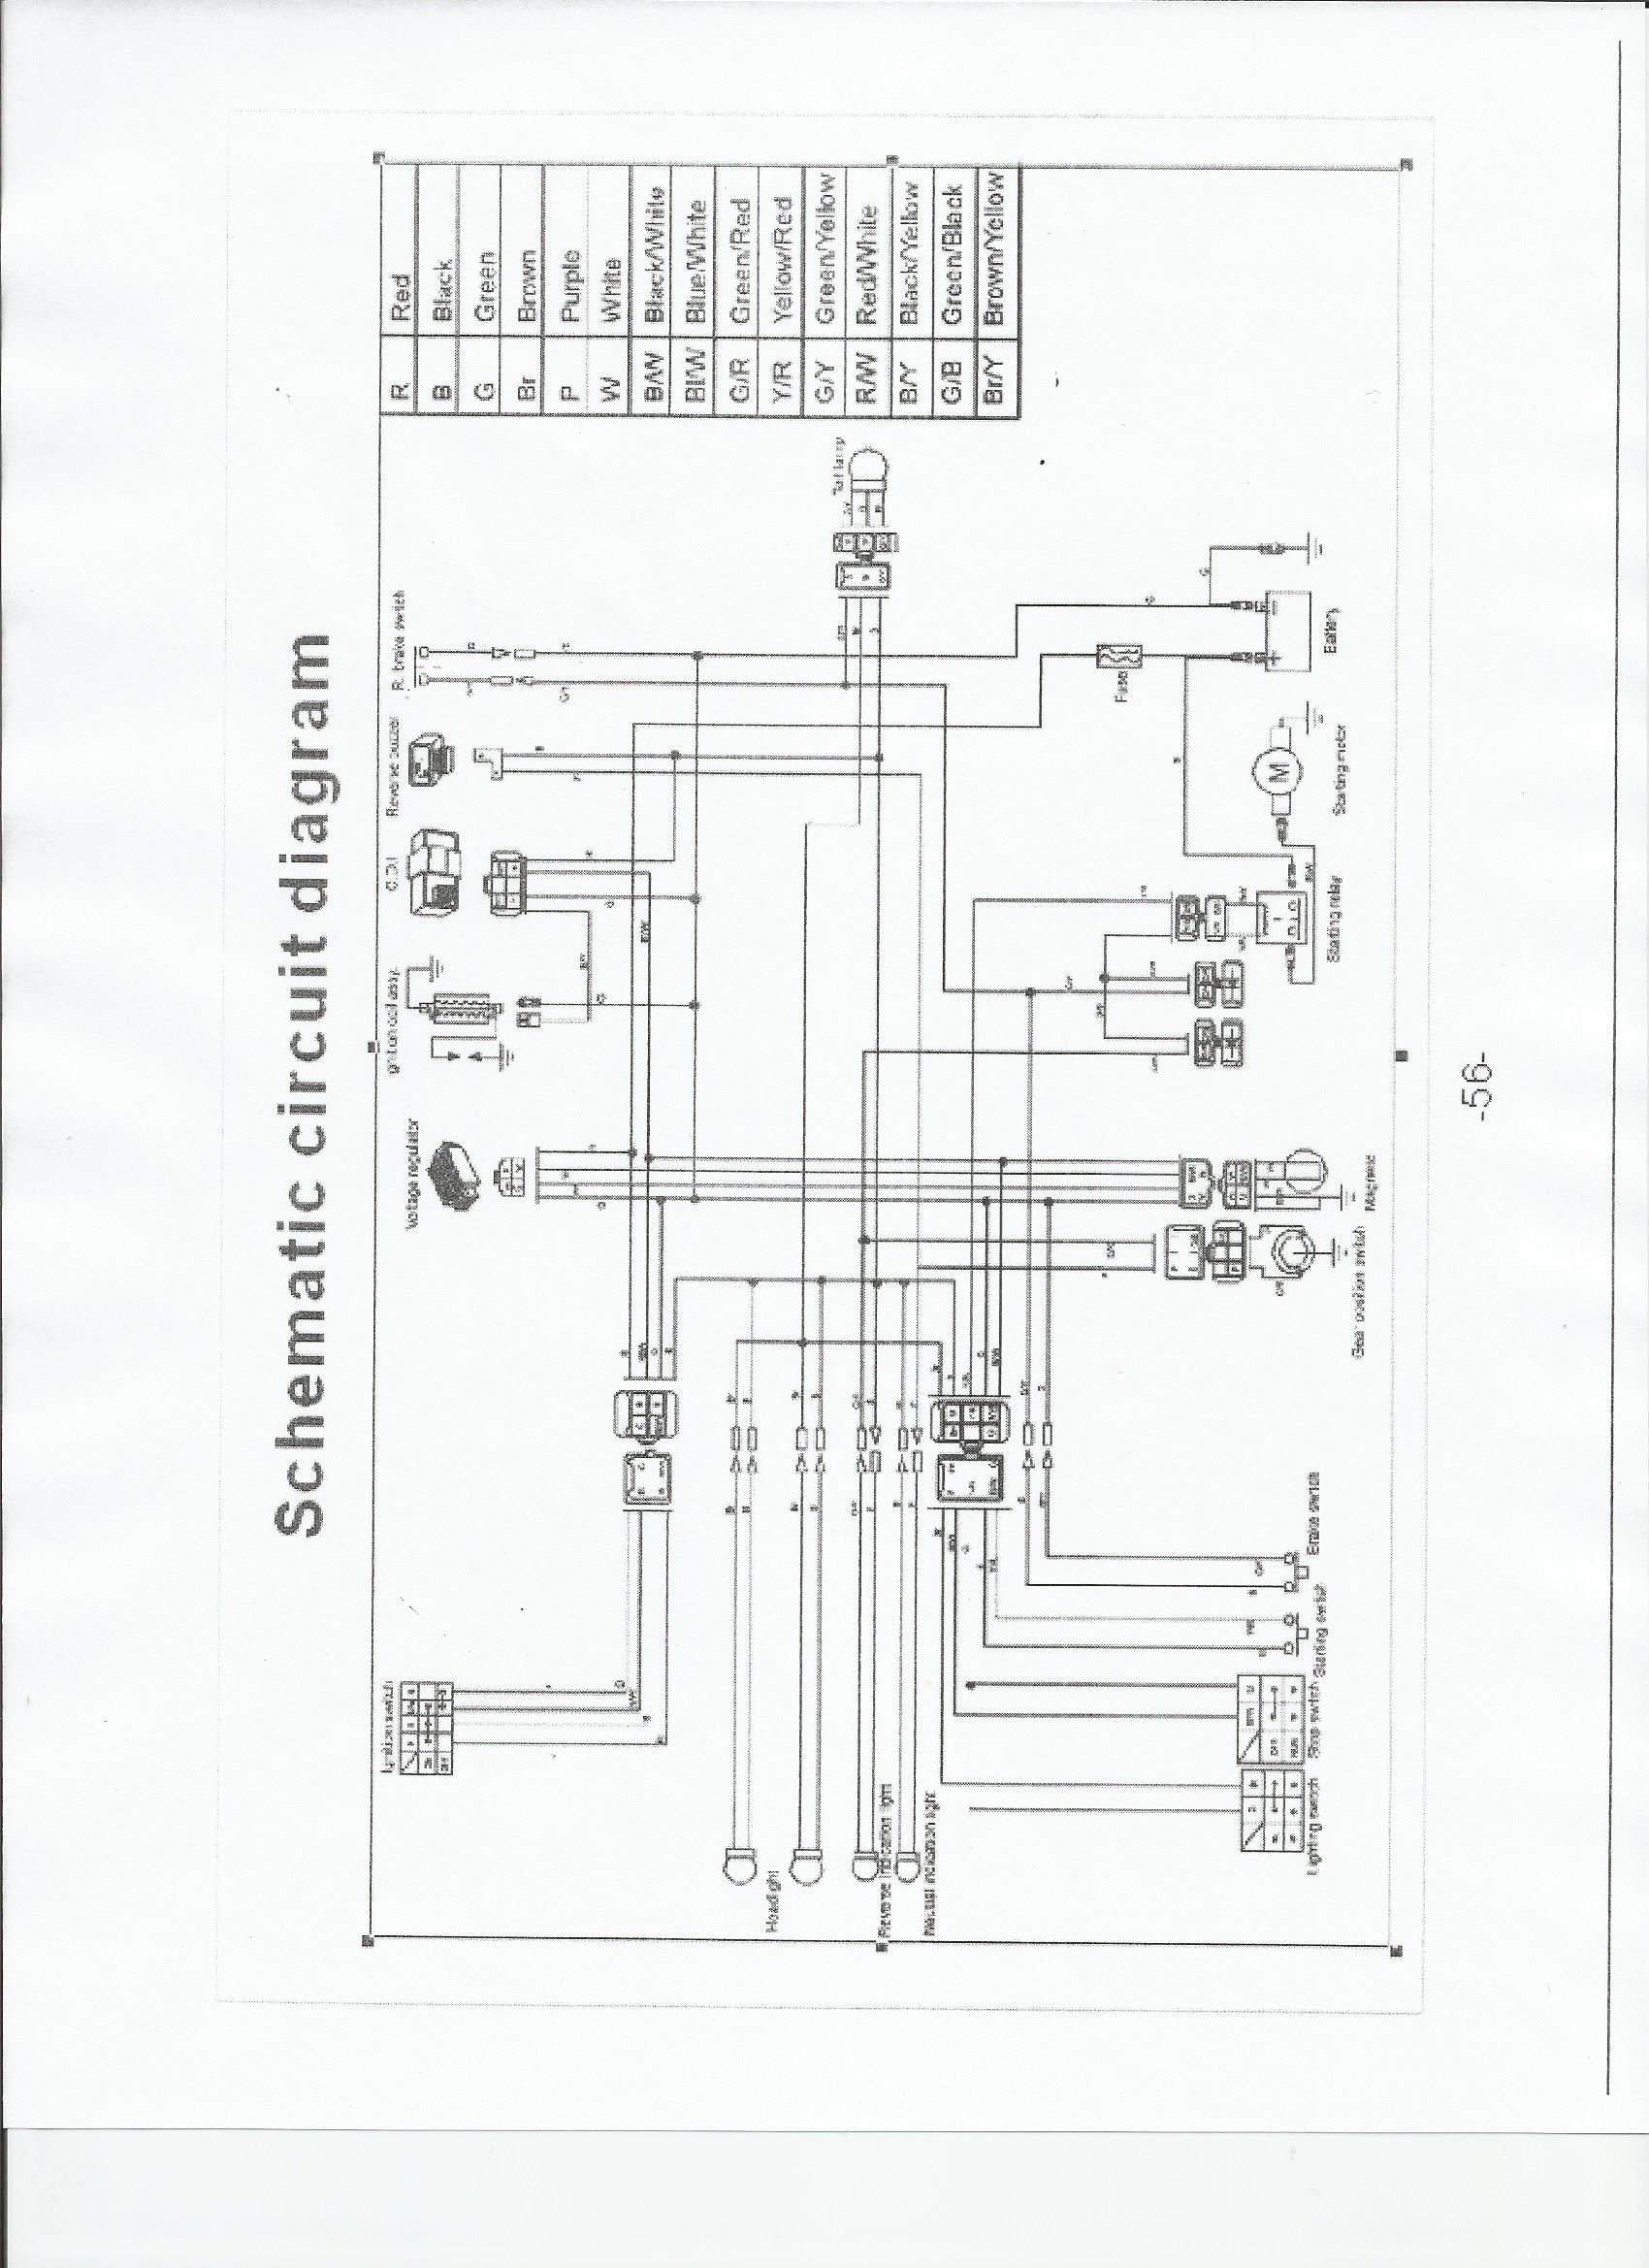 tao tao wiring schematic taotao mini and youth atv wiring schematic familygokarts support taotao 110cc atv wiring diagram at bakdesigns.co